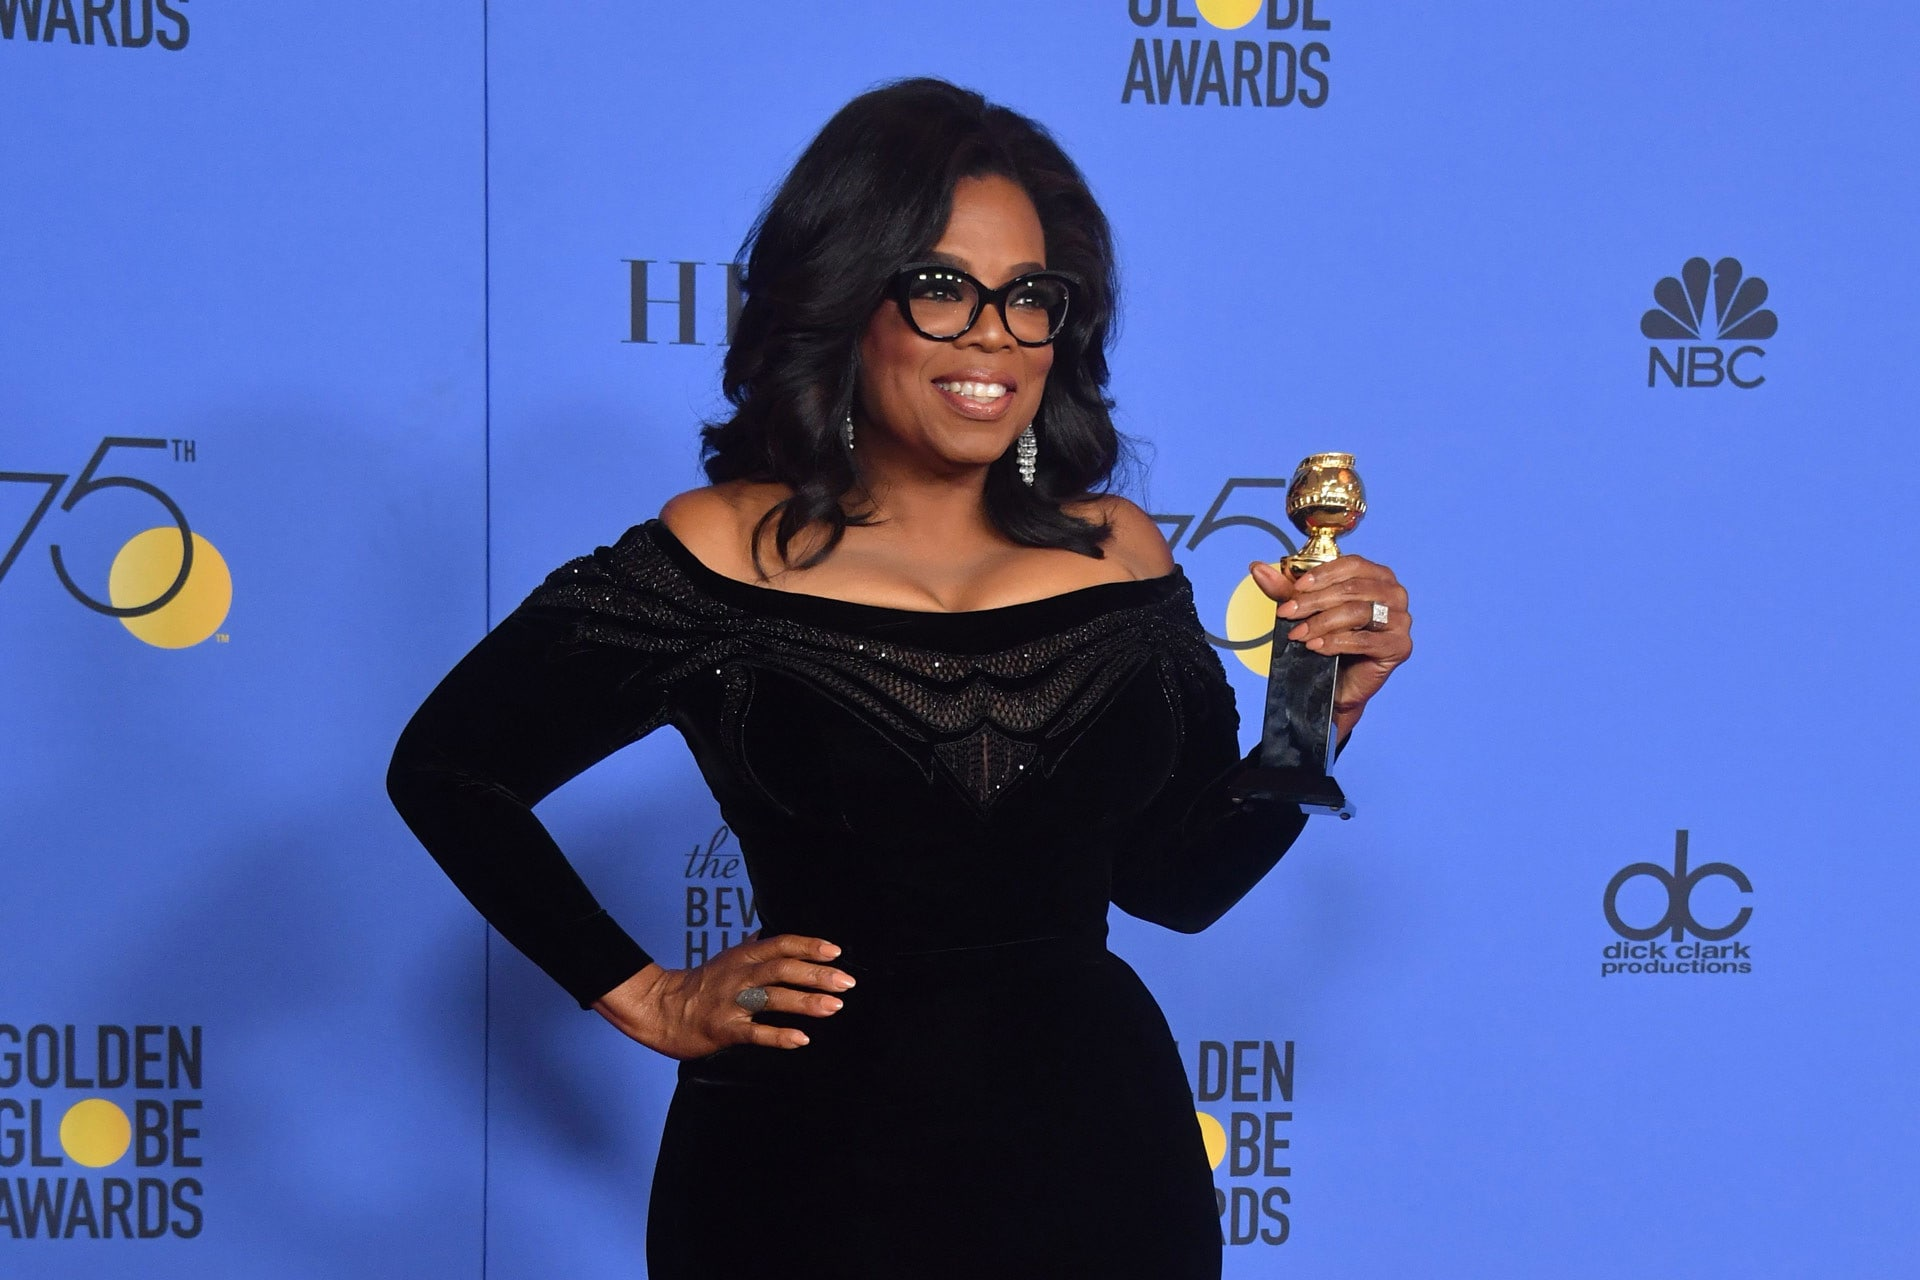 This is why Oprah and Stedman Graham never walk the red carpet together